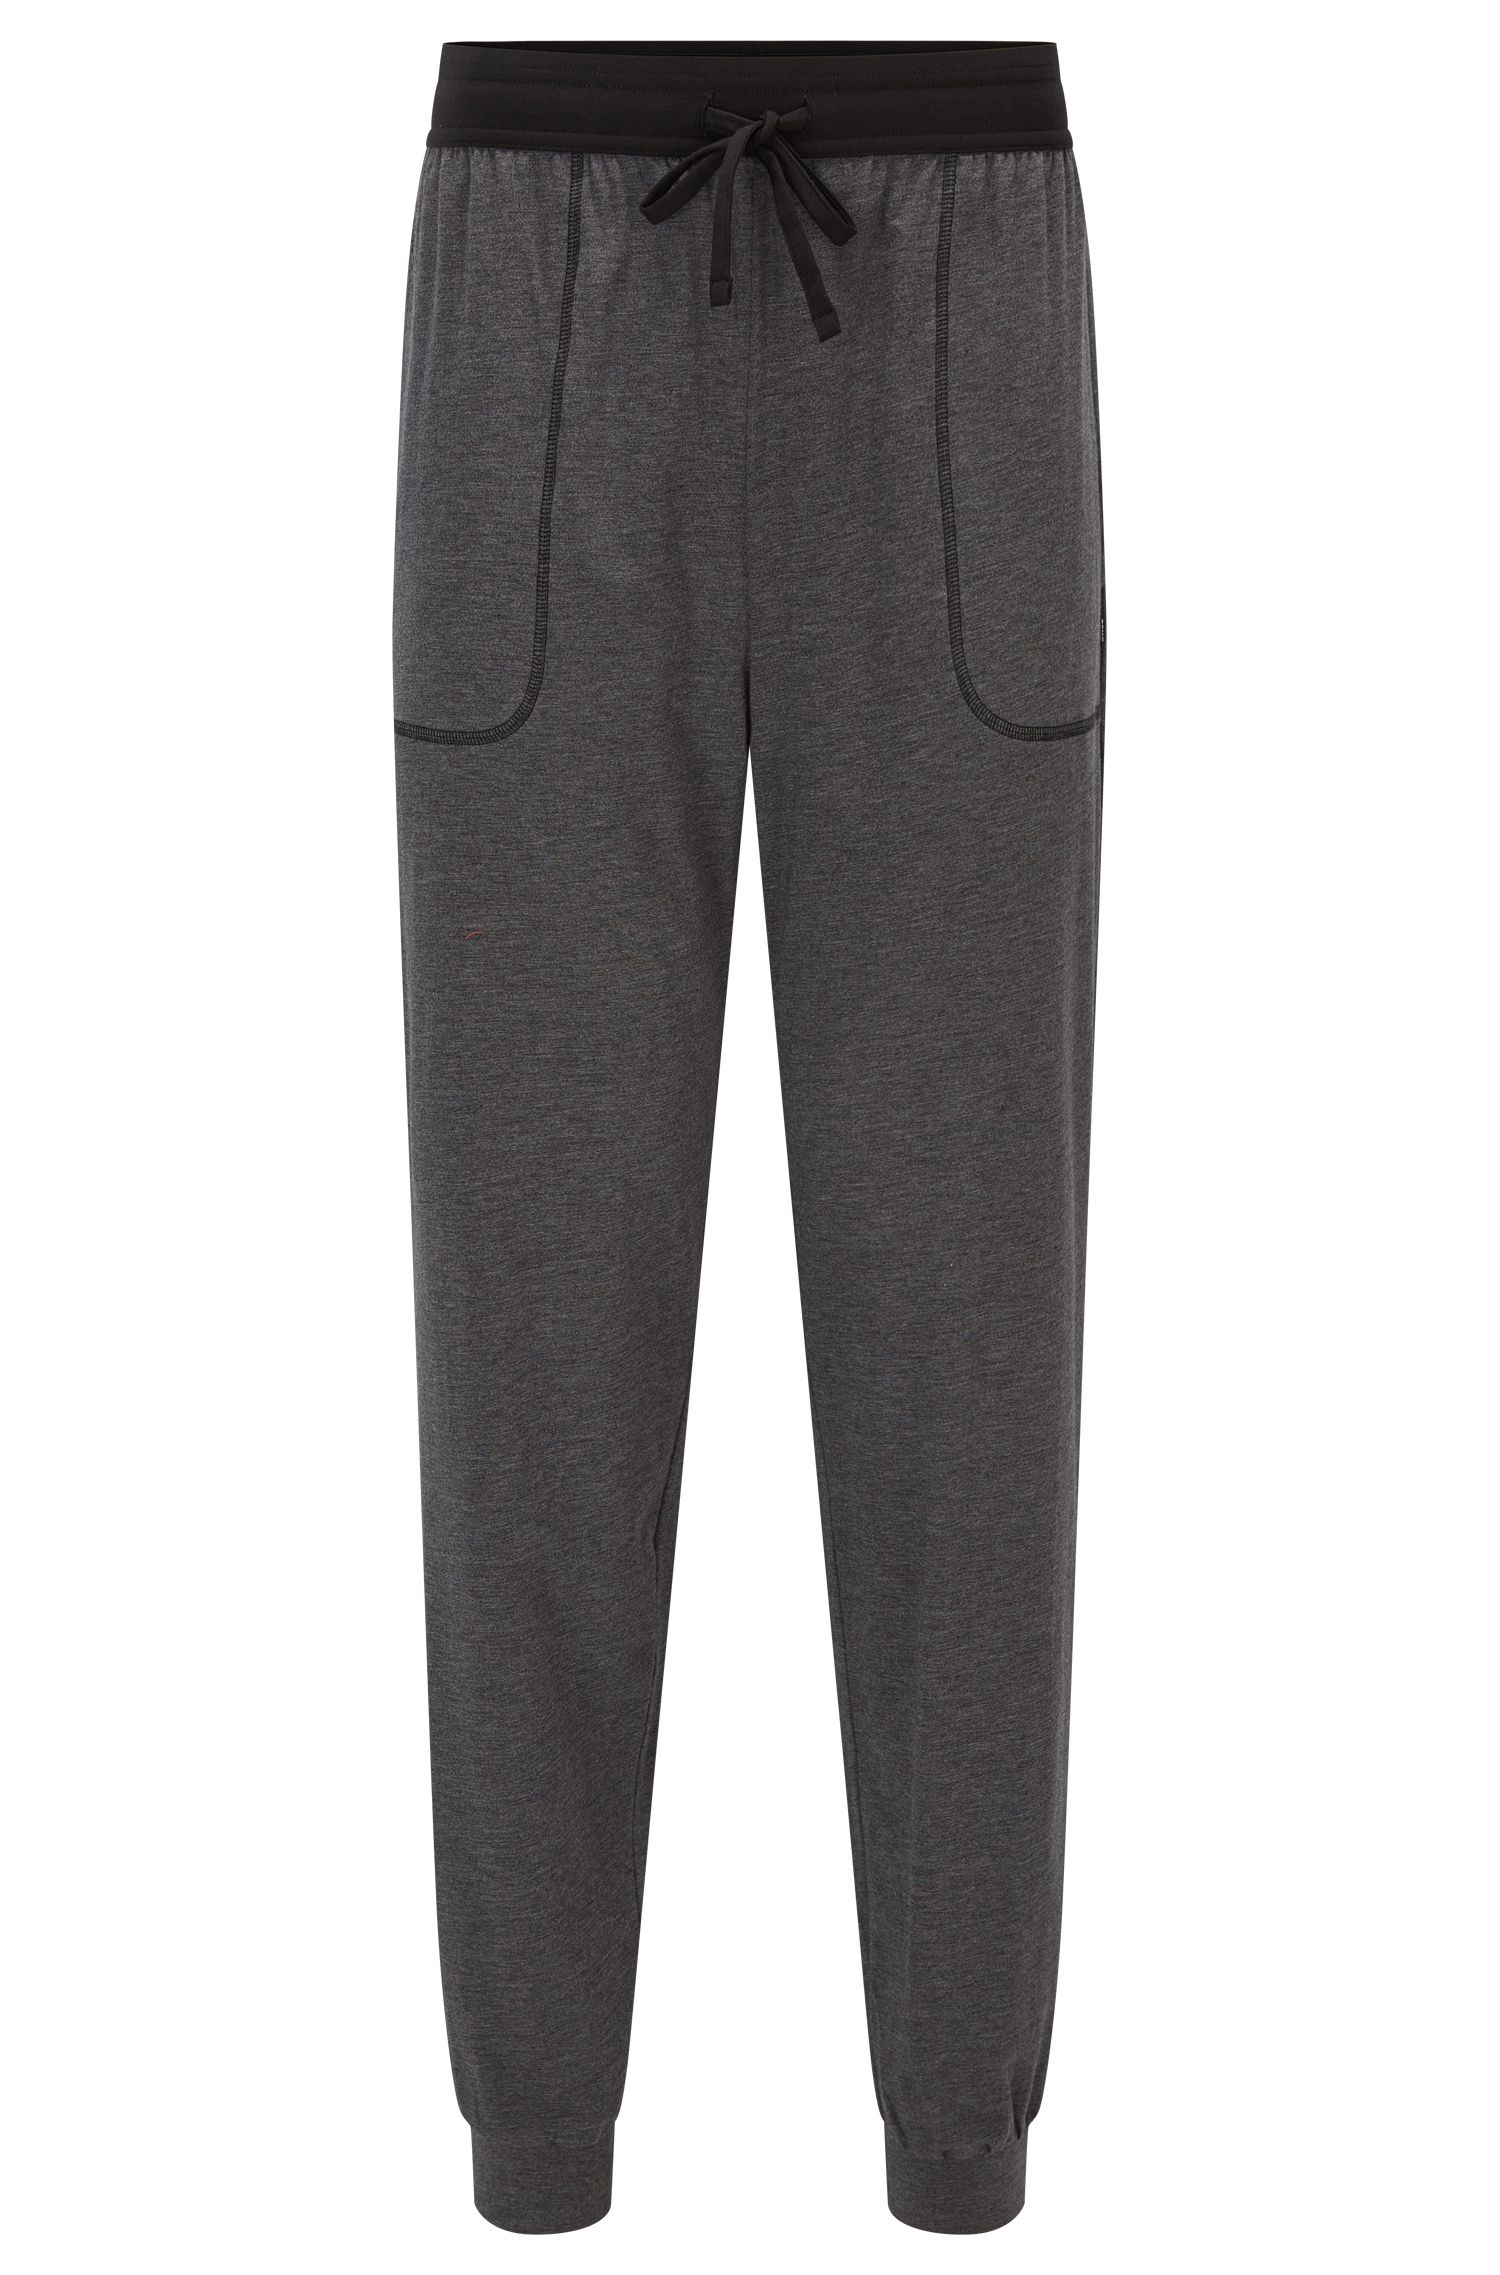 Pyjama trousers in cotton-blend jersey